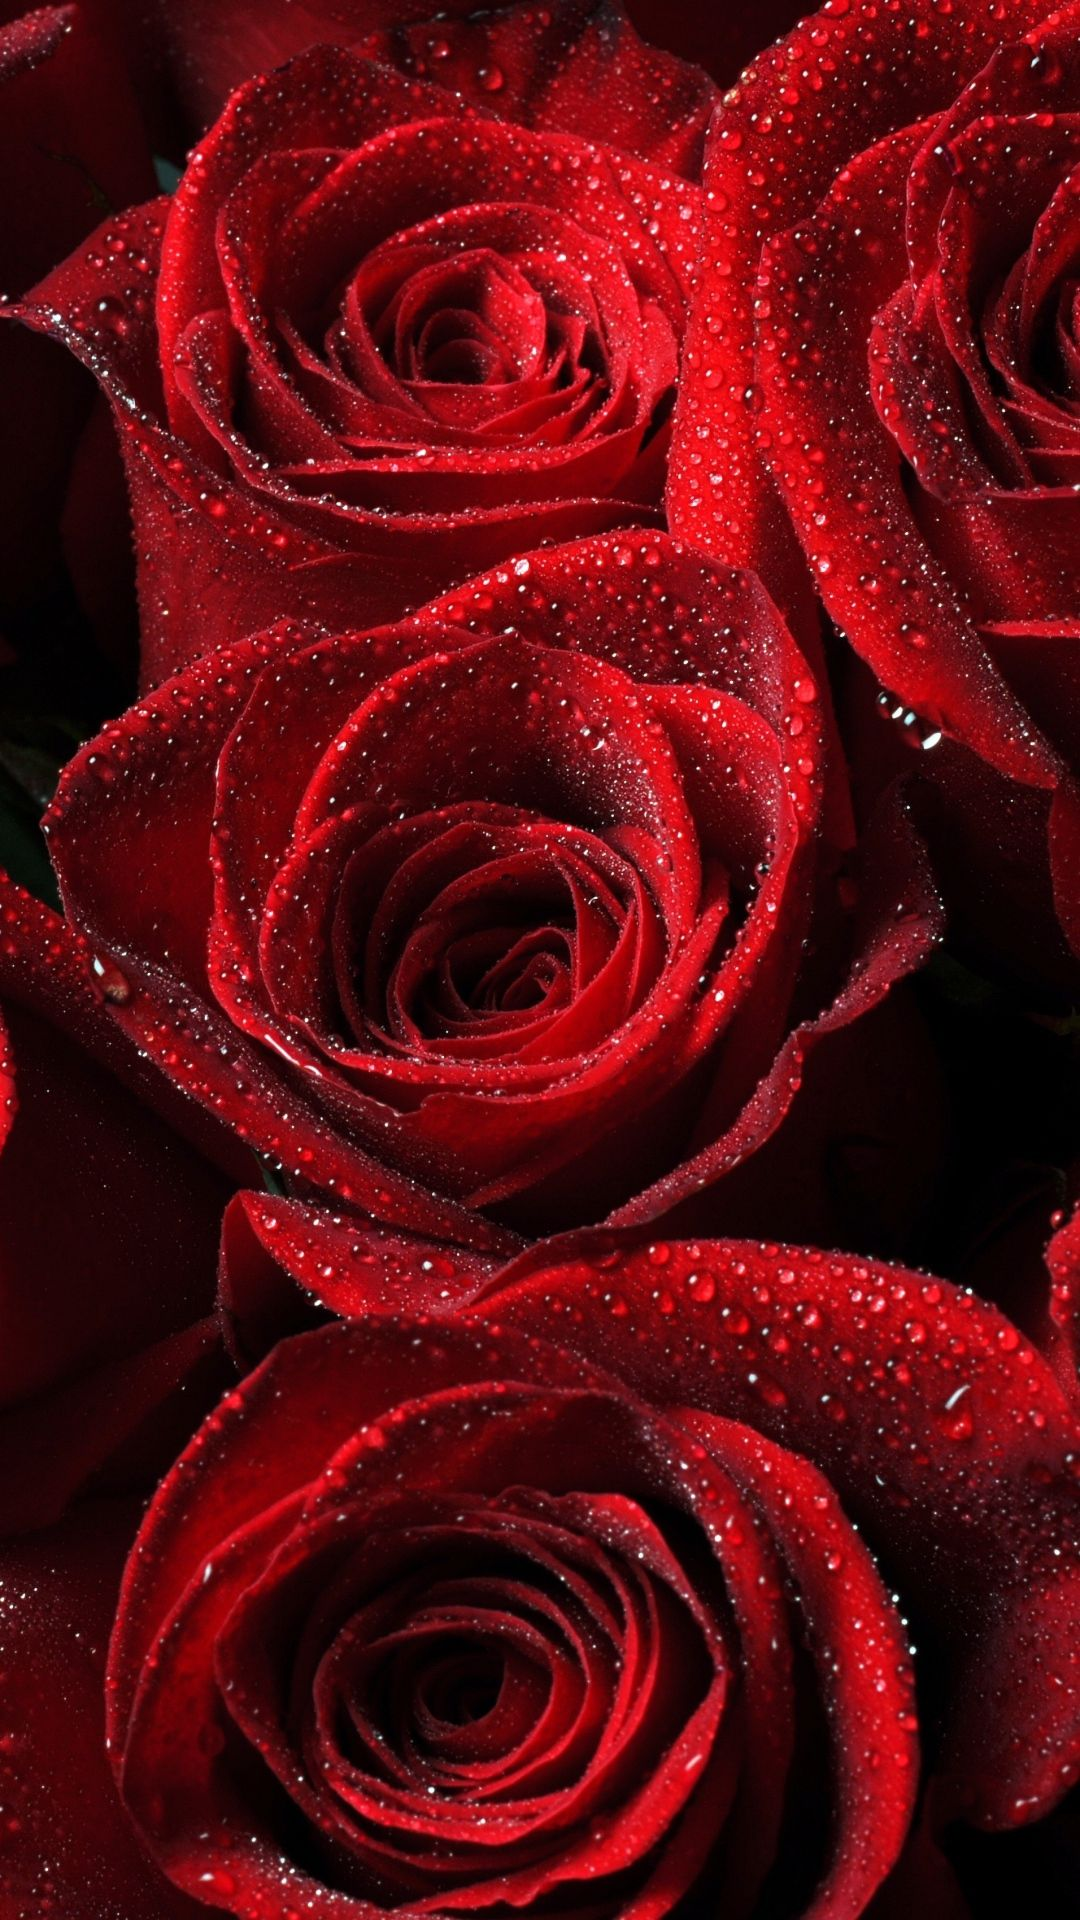 ↑↑tap and get the free app! nature beautiful roses red passion